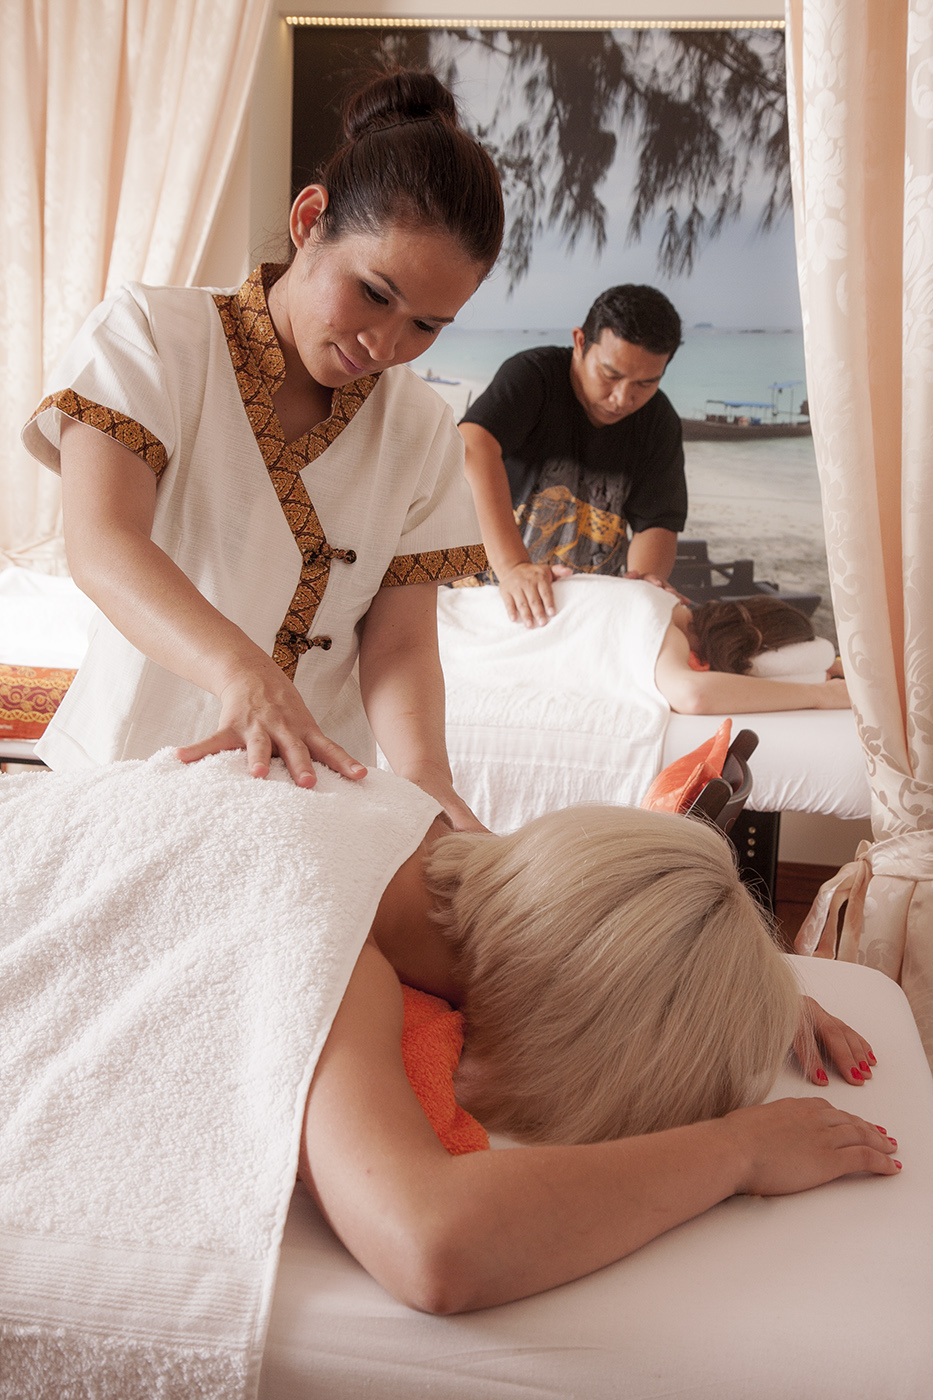 na thai massage escort idag